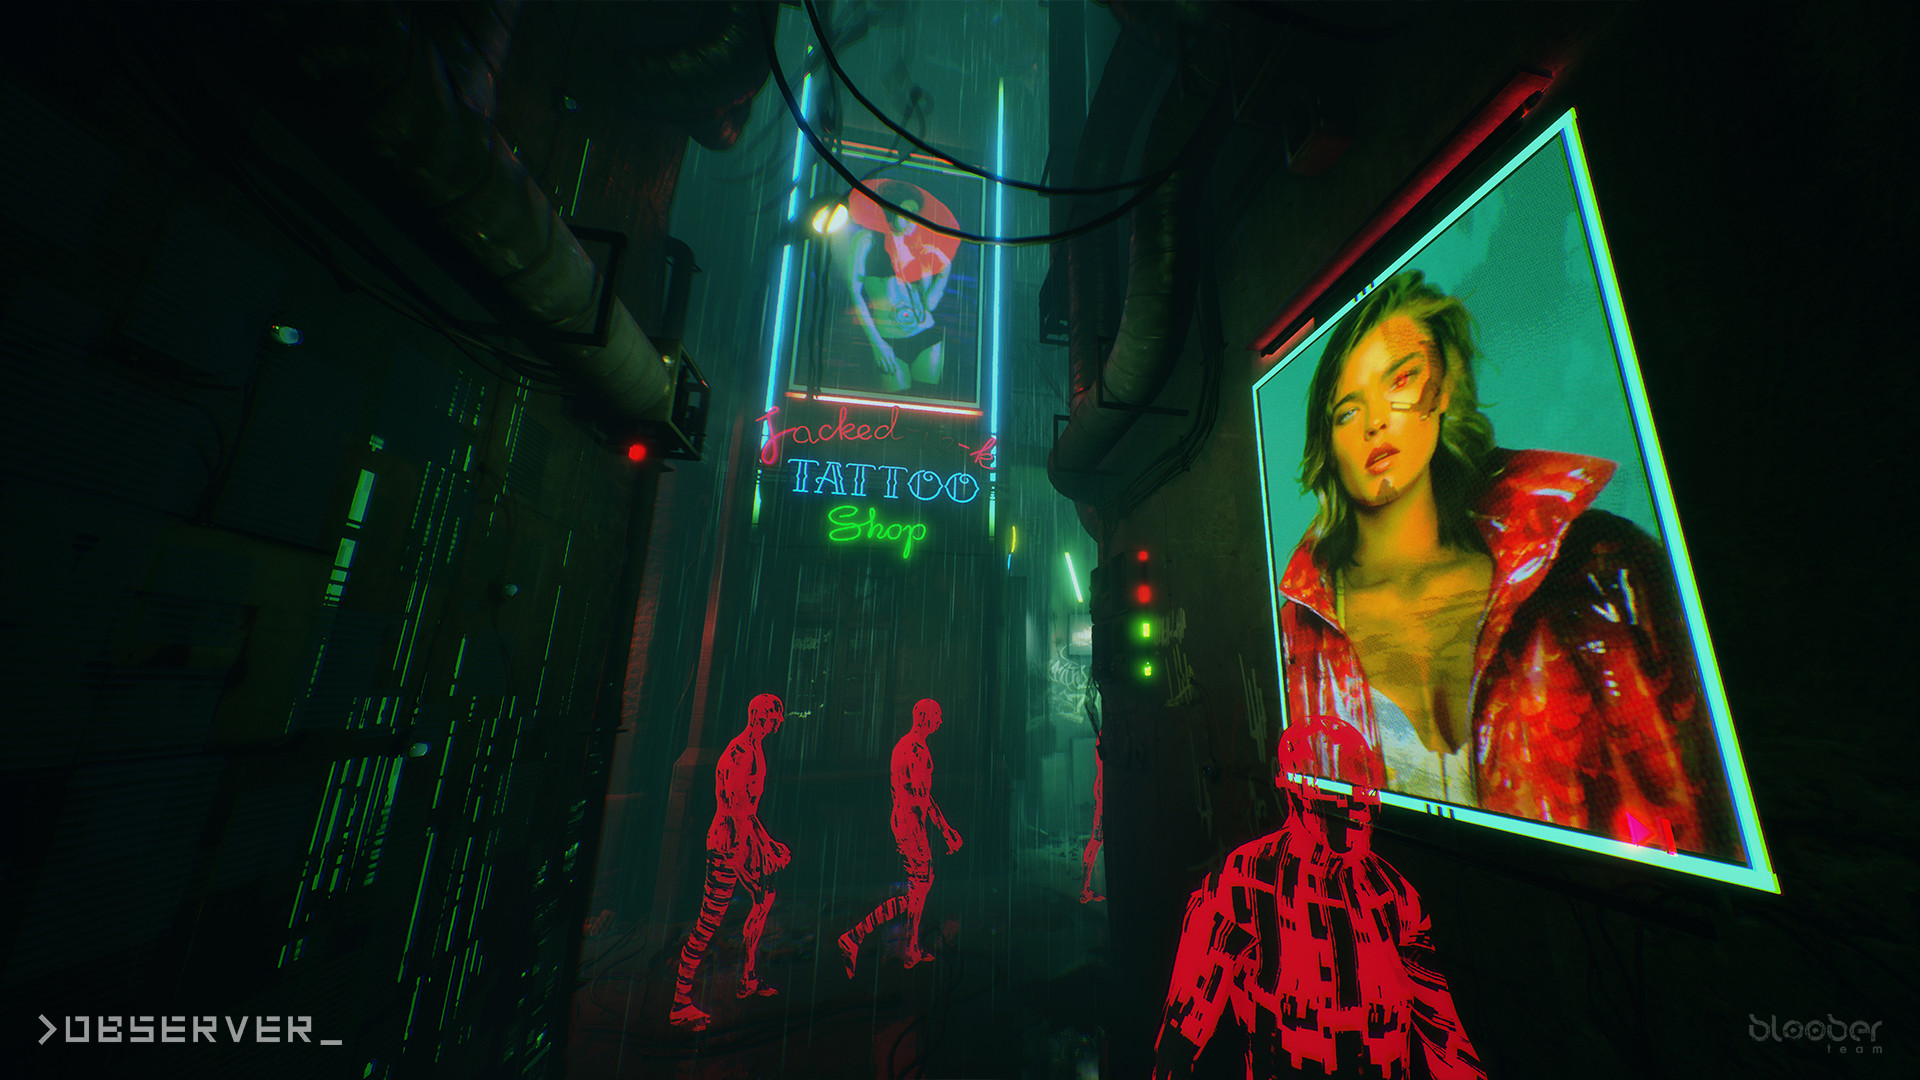 A dark alley with cyberpunk-style billboards and red ghostly figures in a screenshot of Bloober Team's Observer